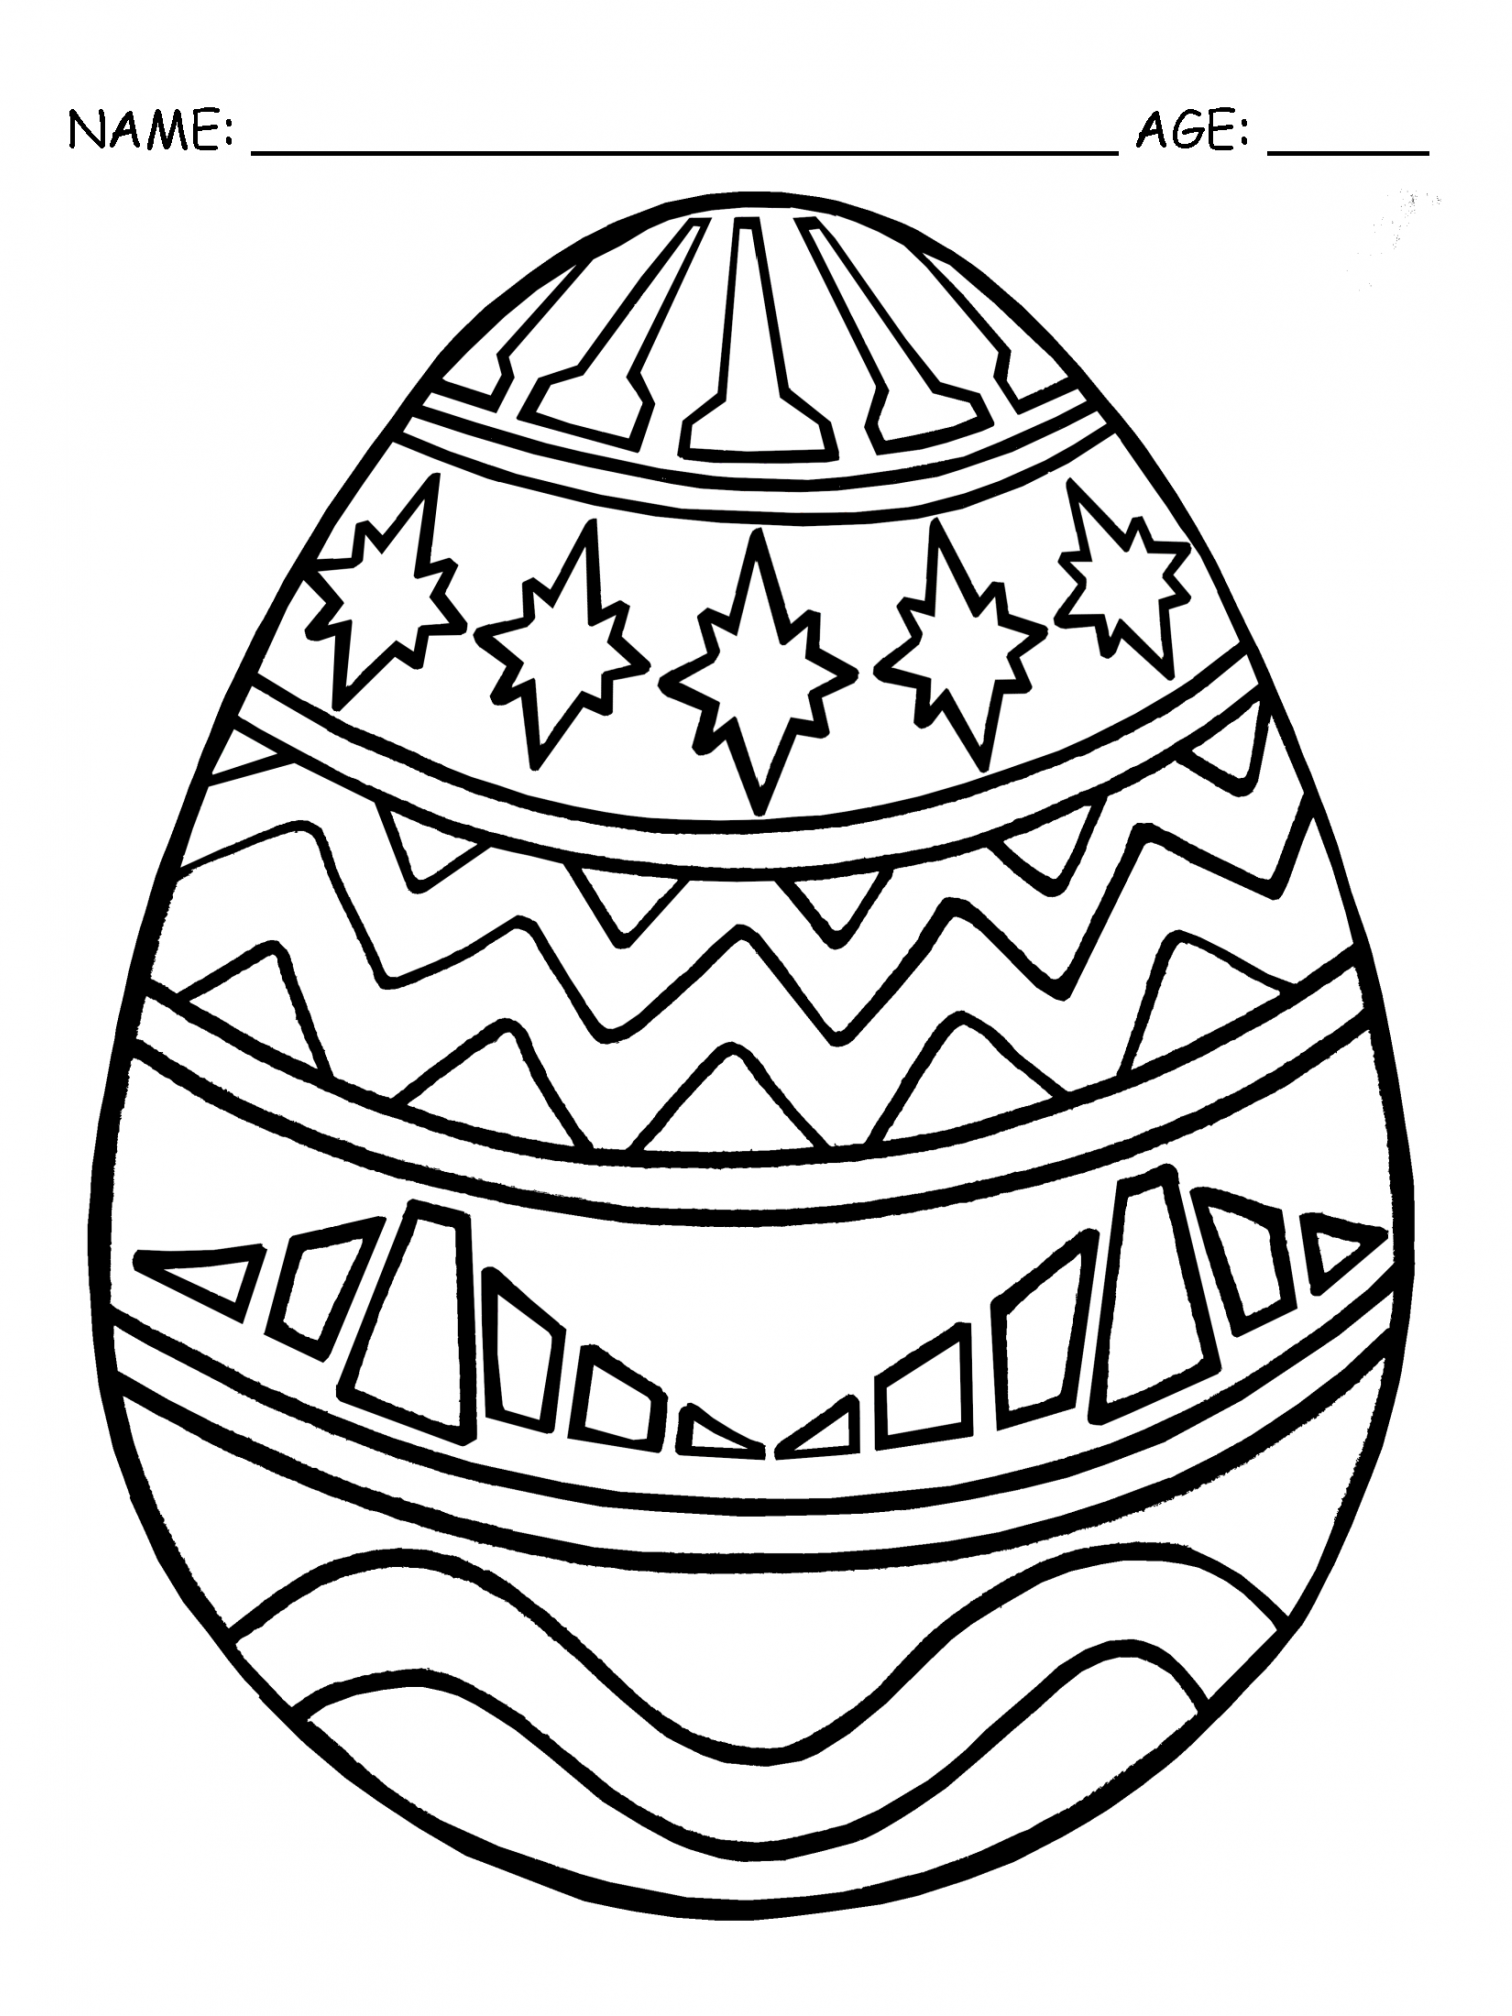 egg coloring sheet the best free printable easter egg coloring pages home sheet coloring egg